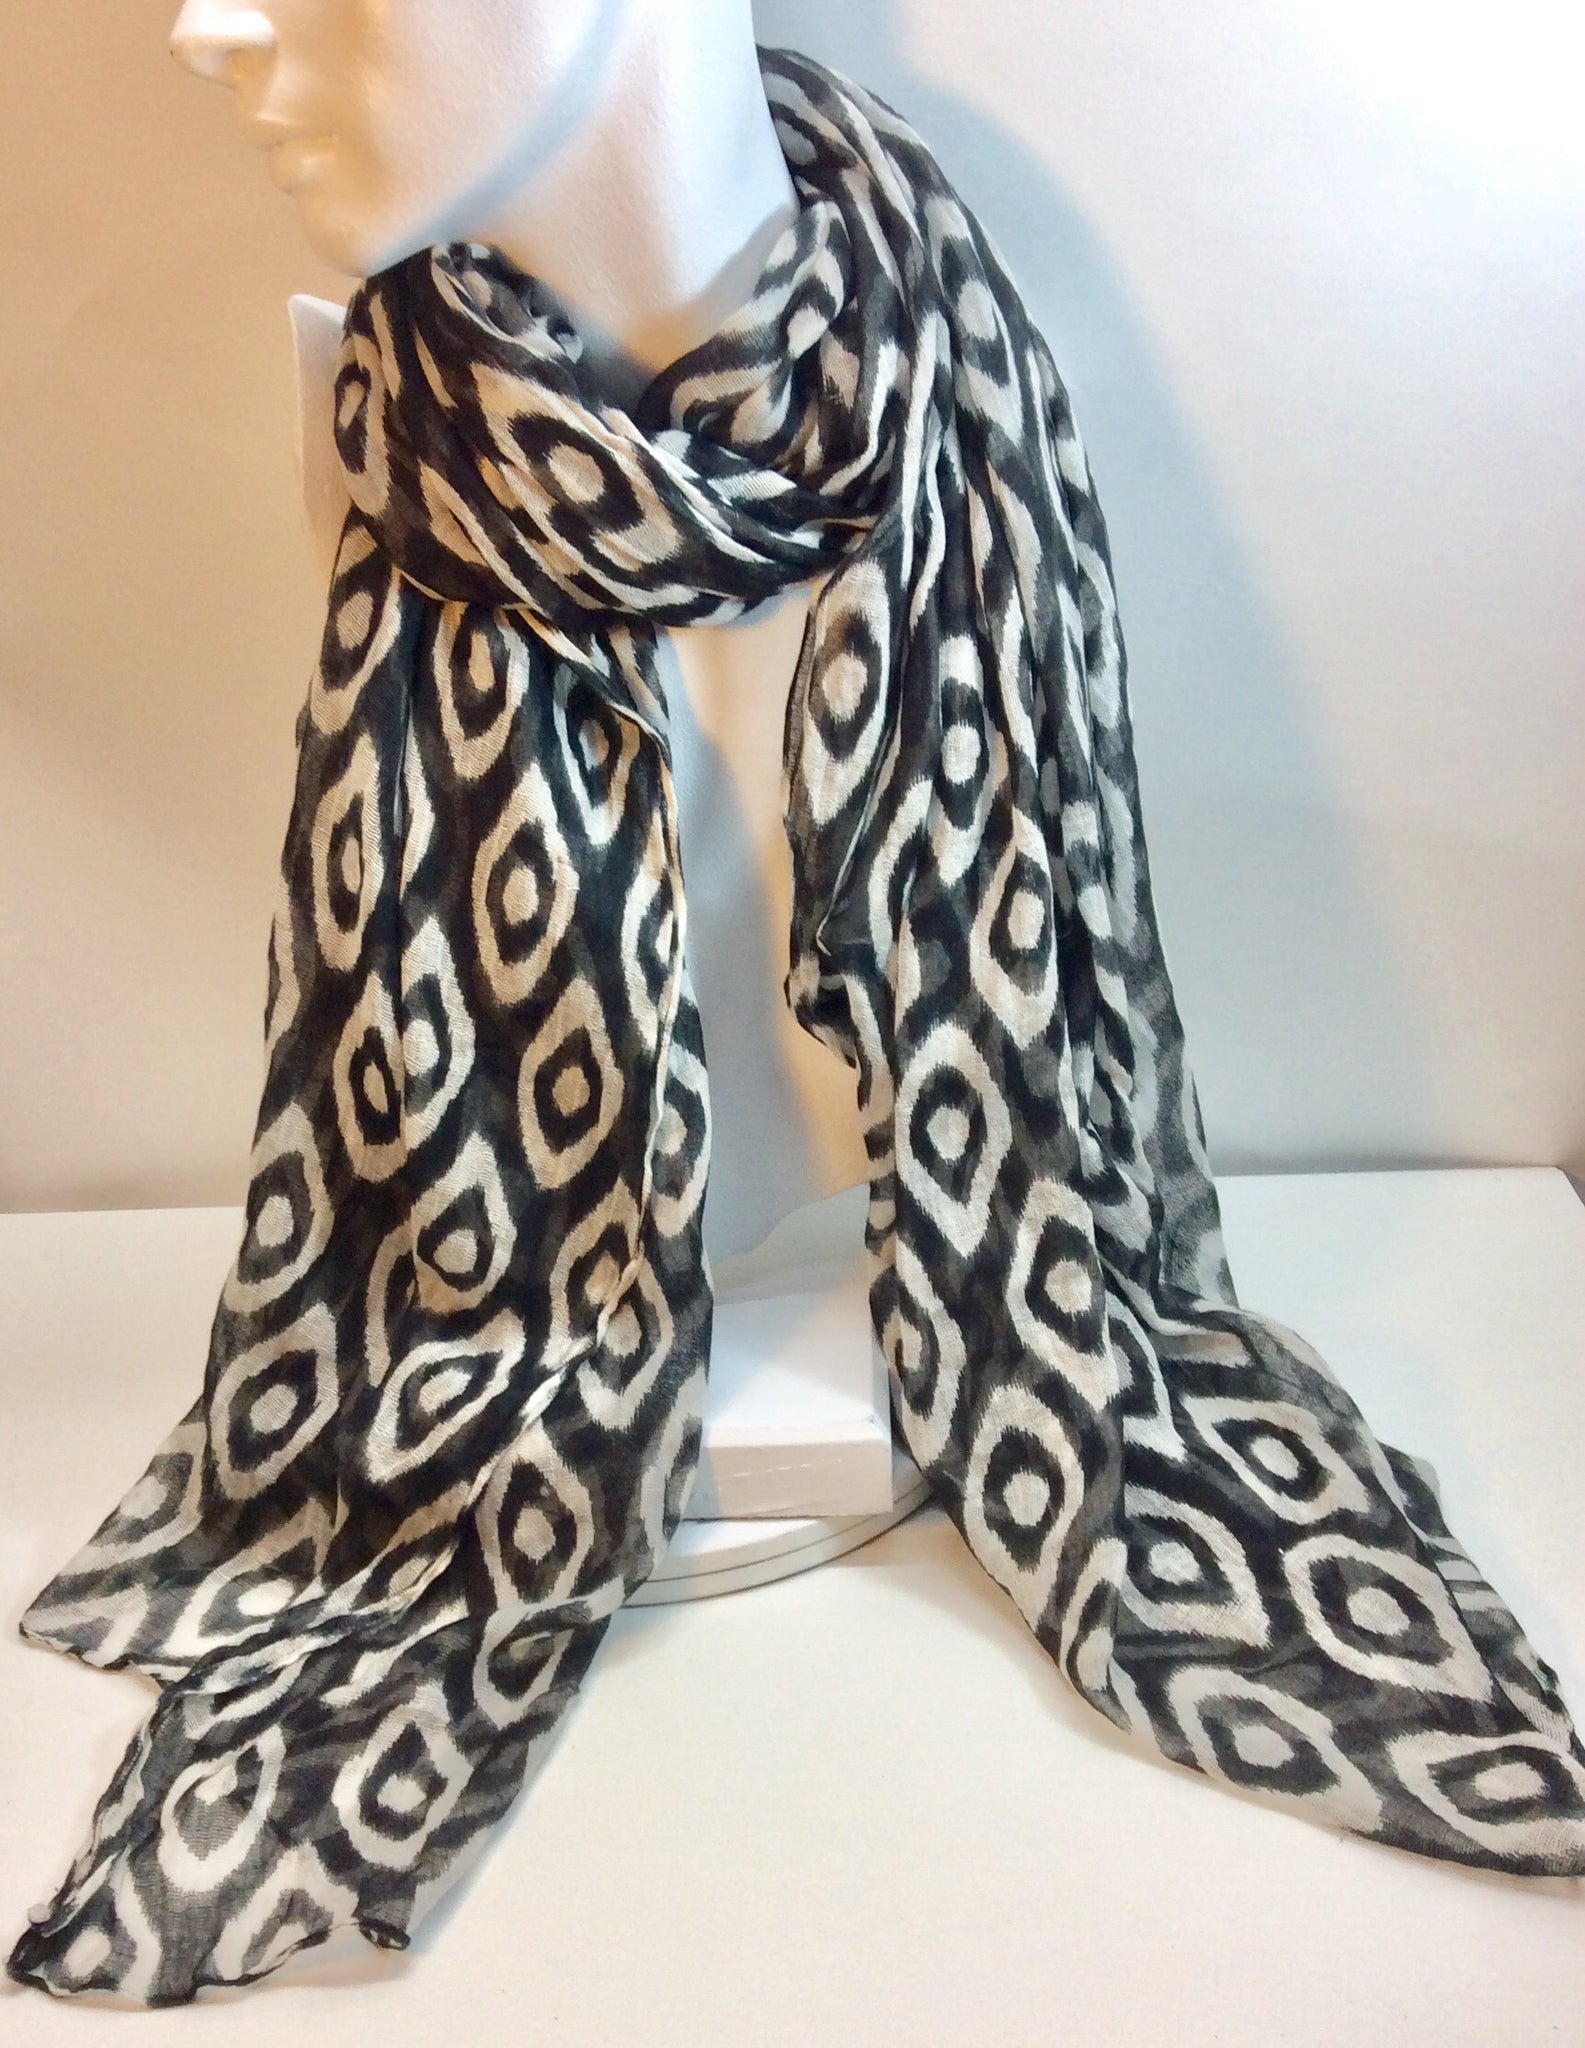 Stylish black and white print cotton scarf